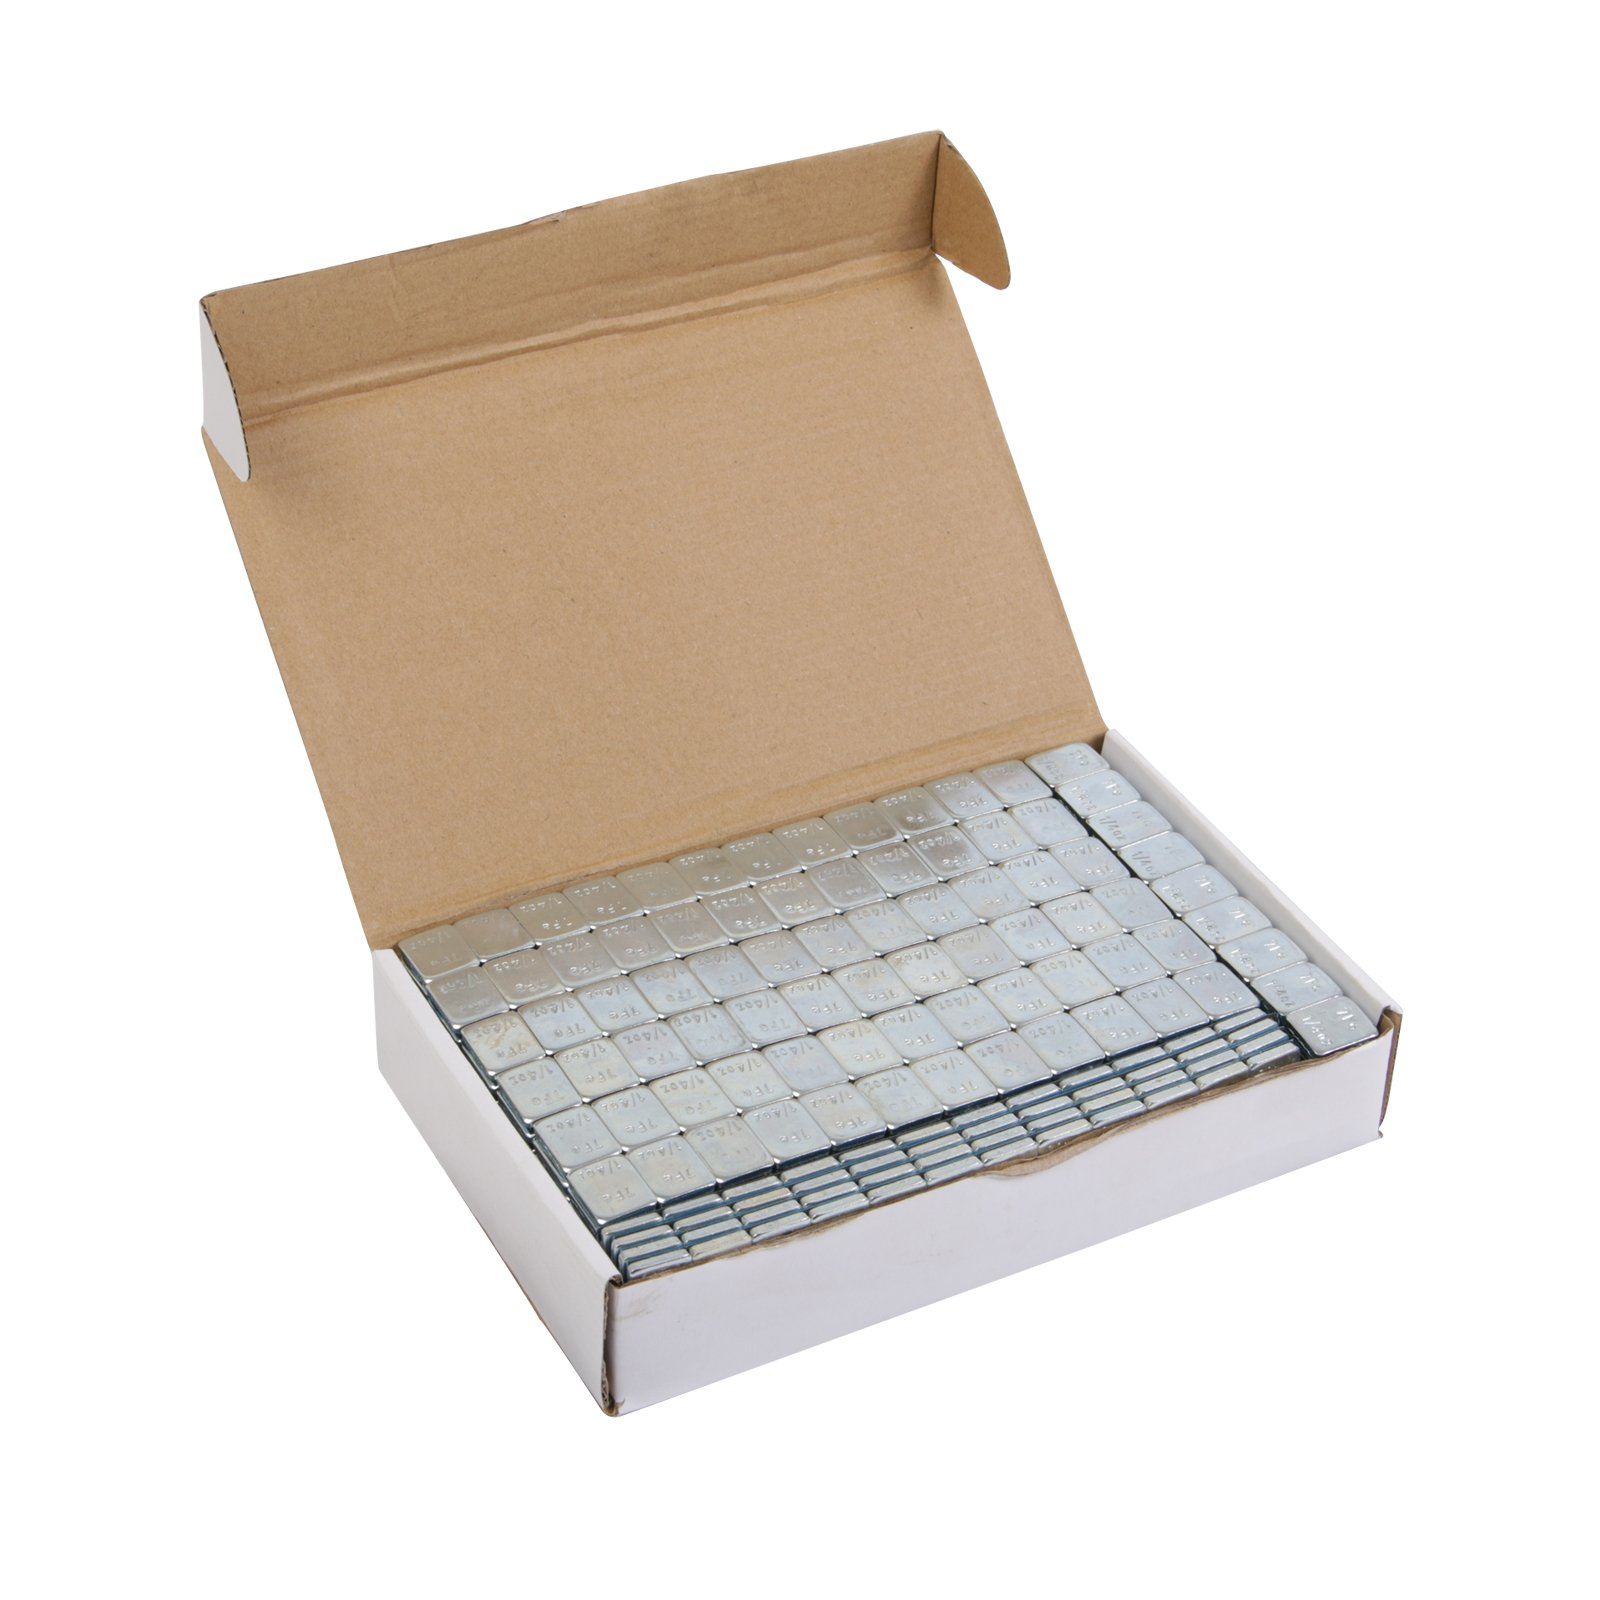 (4) Boxes - 1/4 ounce Wheel Weights Zinc Plated (Lead Free) Strips Adhesive Sticker Backing (816oz total, 68 3-oz strips, ~51lb/pounds) Silver